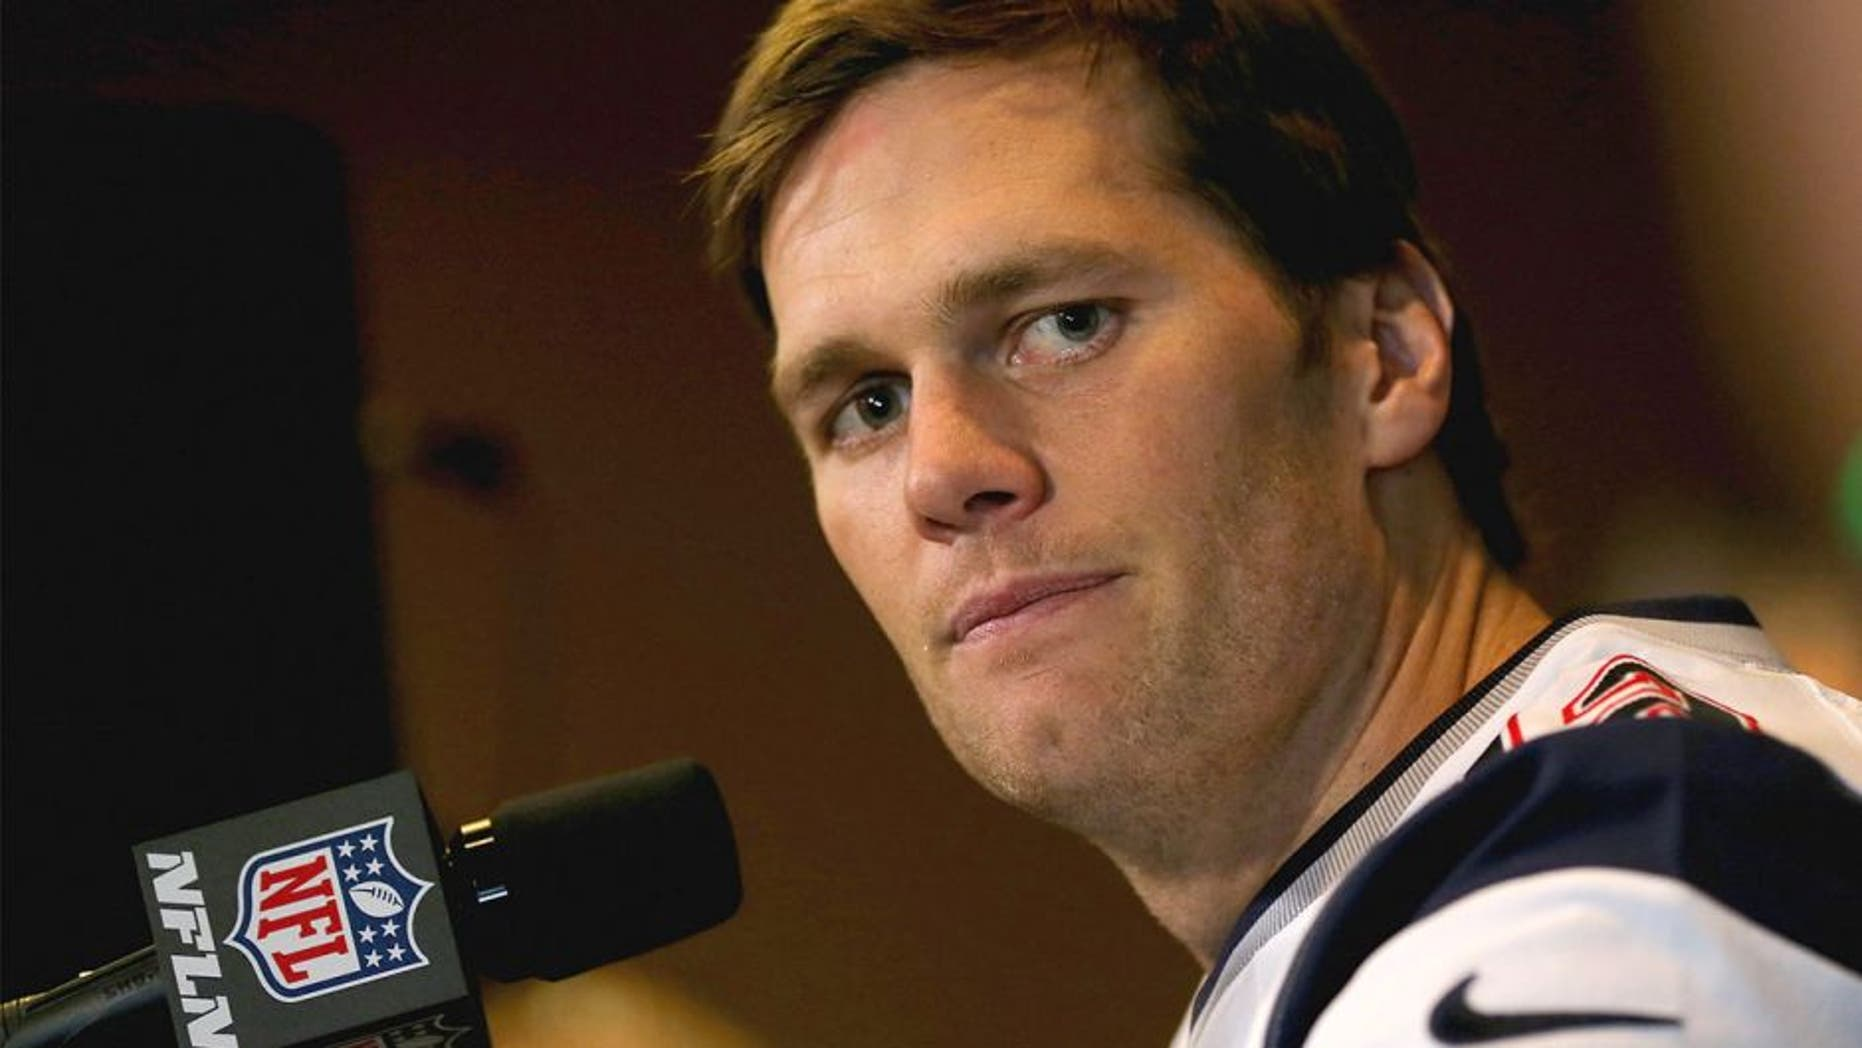 CHANDLER, AZ - JANUARY 28: Quarterback Tom Brady #12 of the New England Patriots speaks with the media on January 28, 2015 in Chandler, Arizona. (Photo by Elsa/Getty Images)